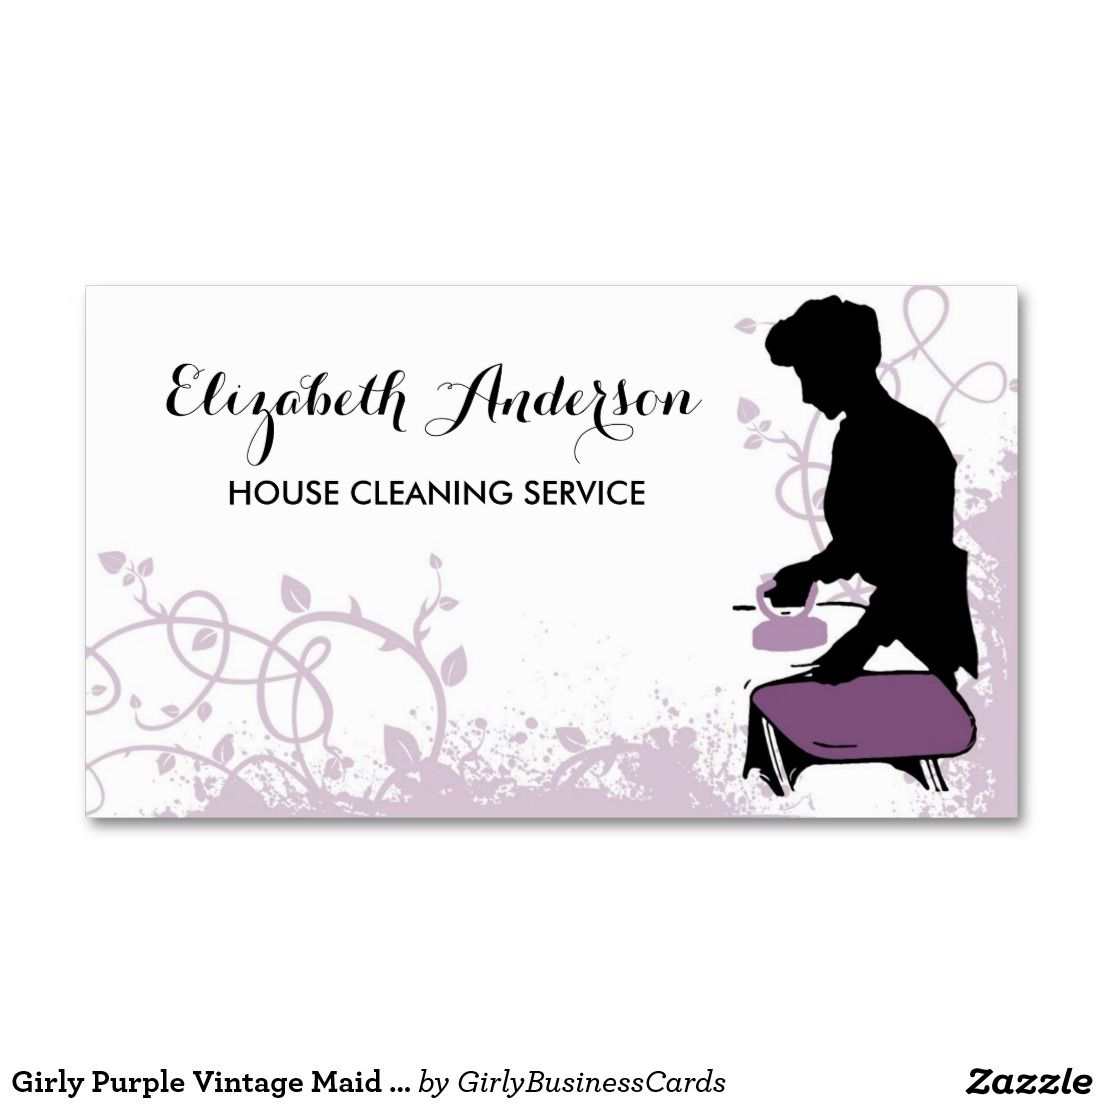 Cleaning services business cards cleaning services lady business cards cleaning services lady girly download magicingreecefo Images